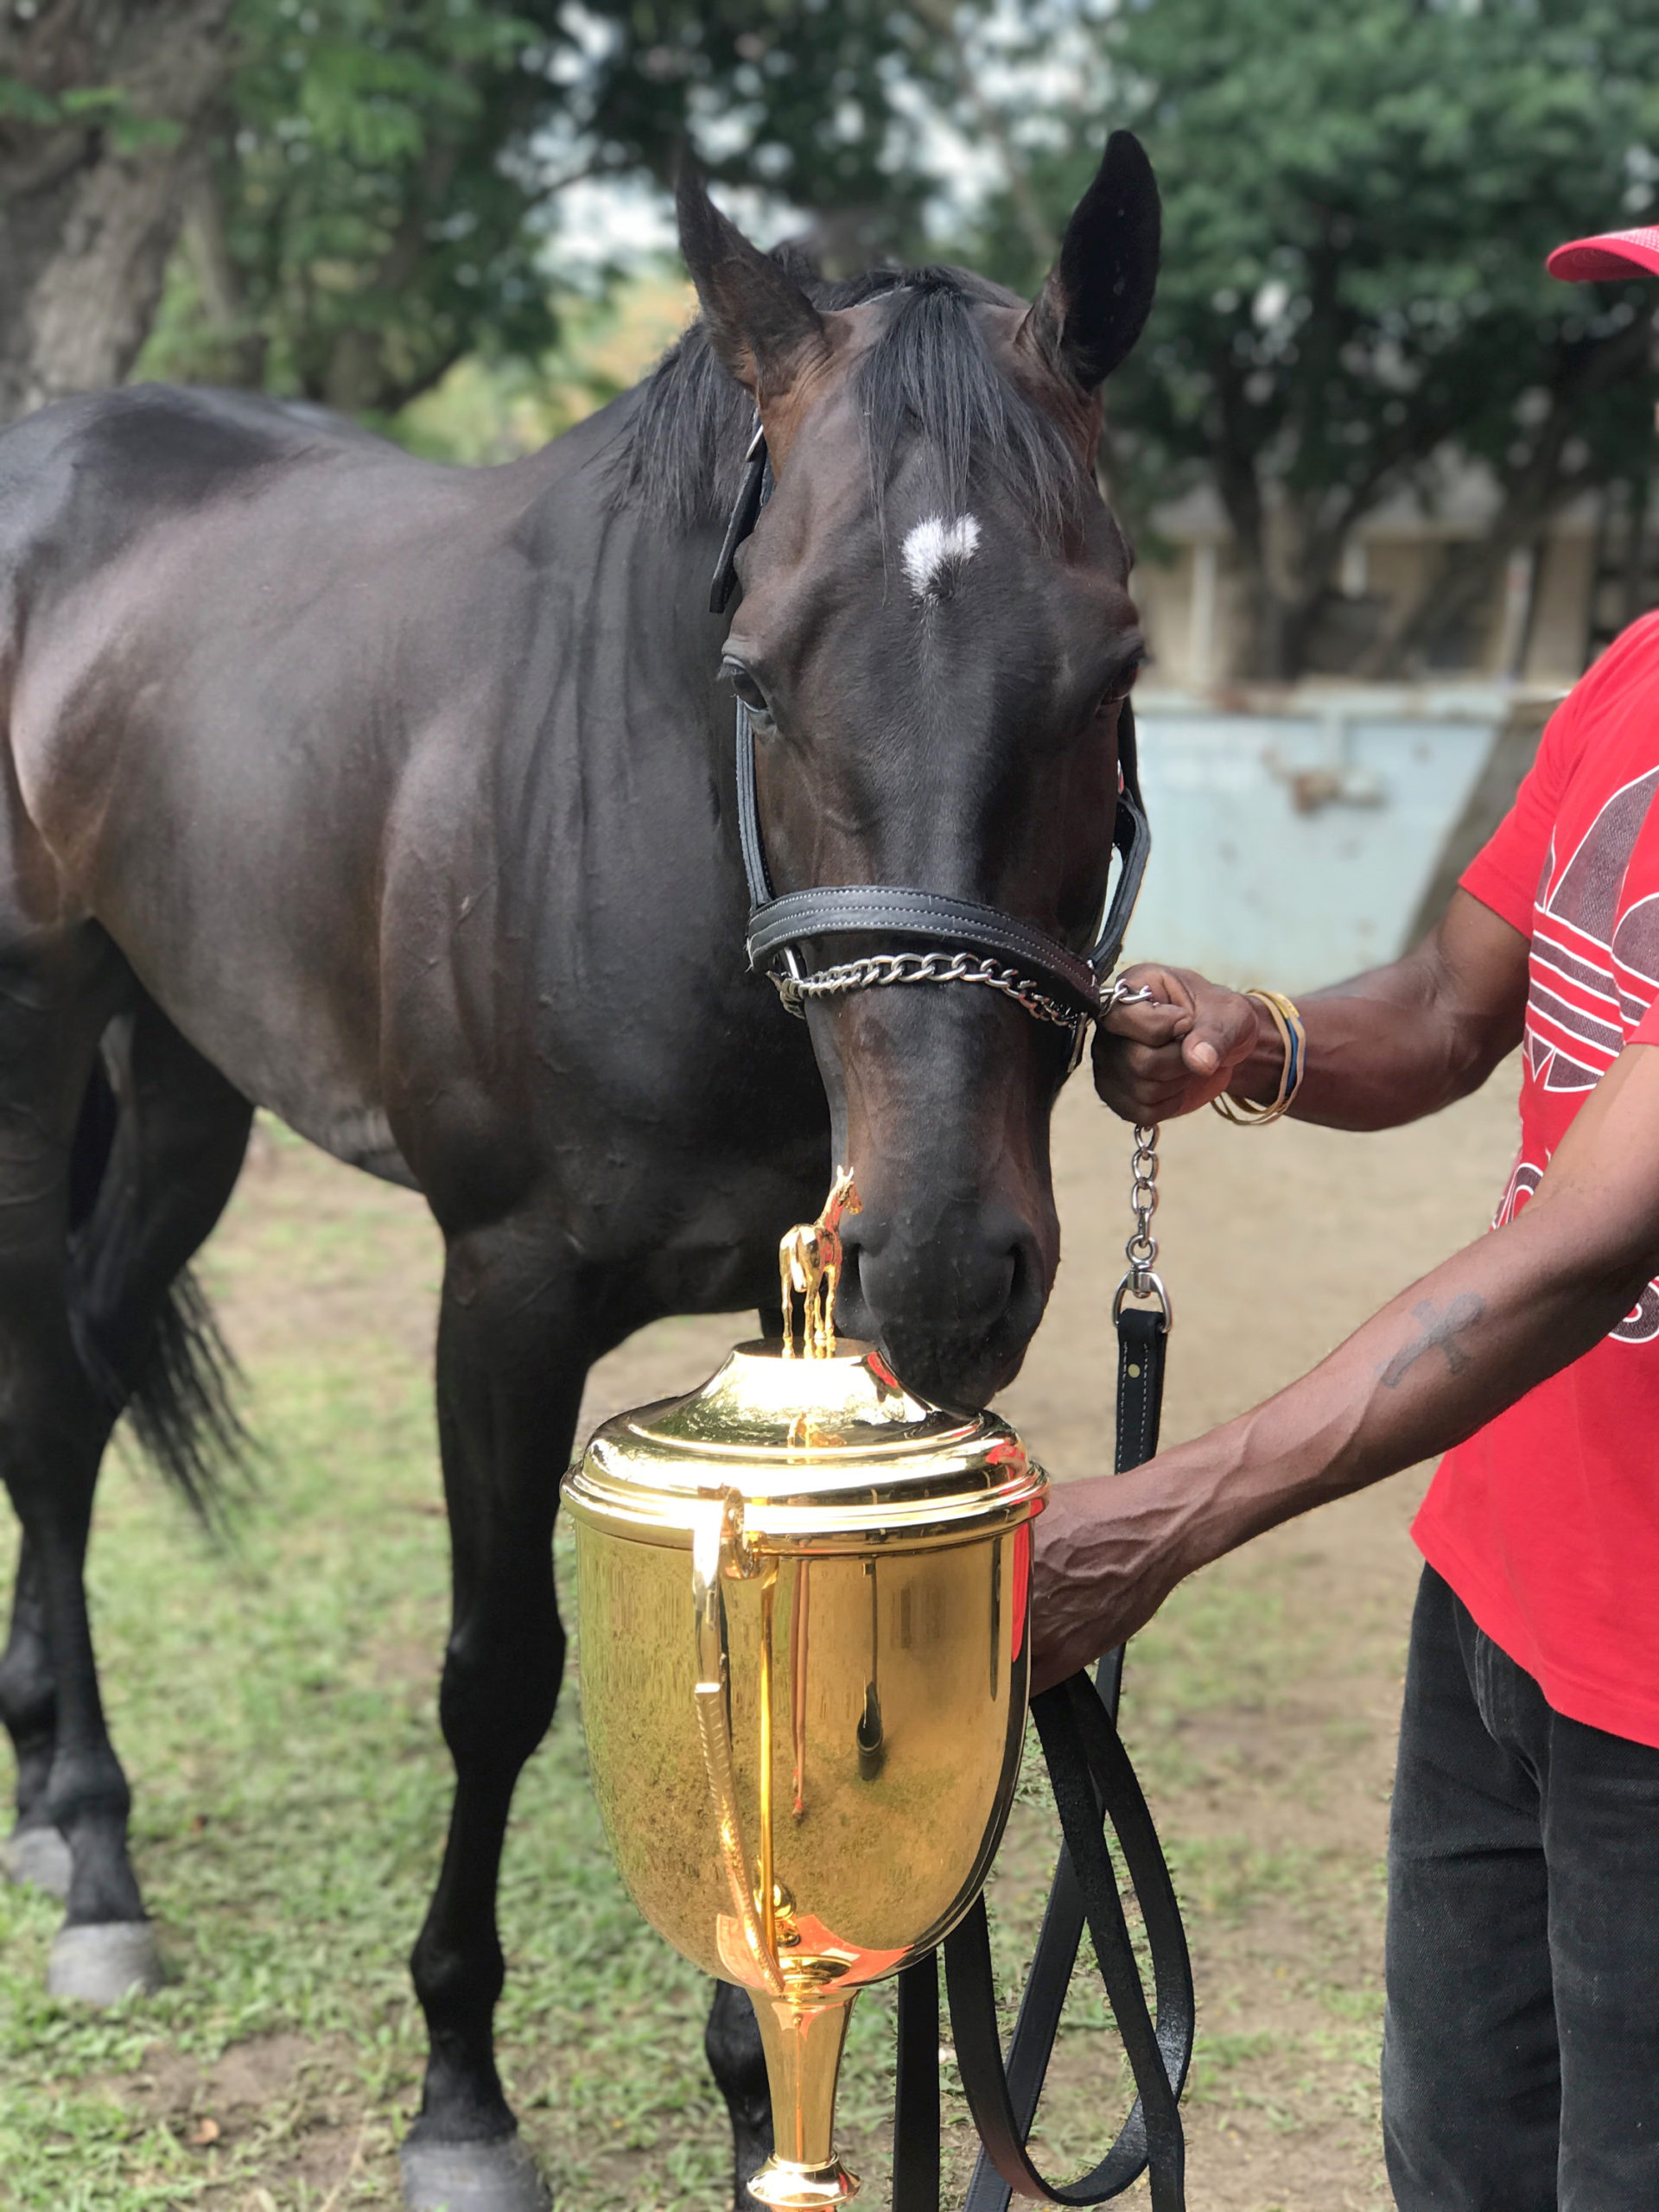 Sir Dudley with the Barbados Gold Cup